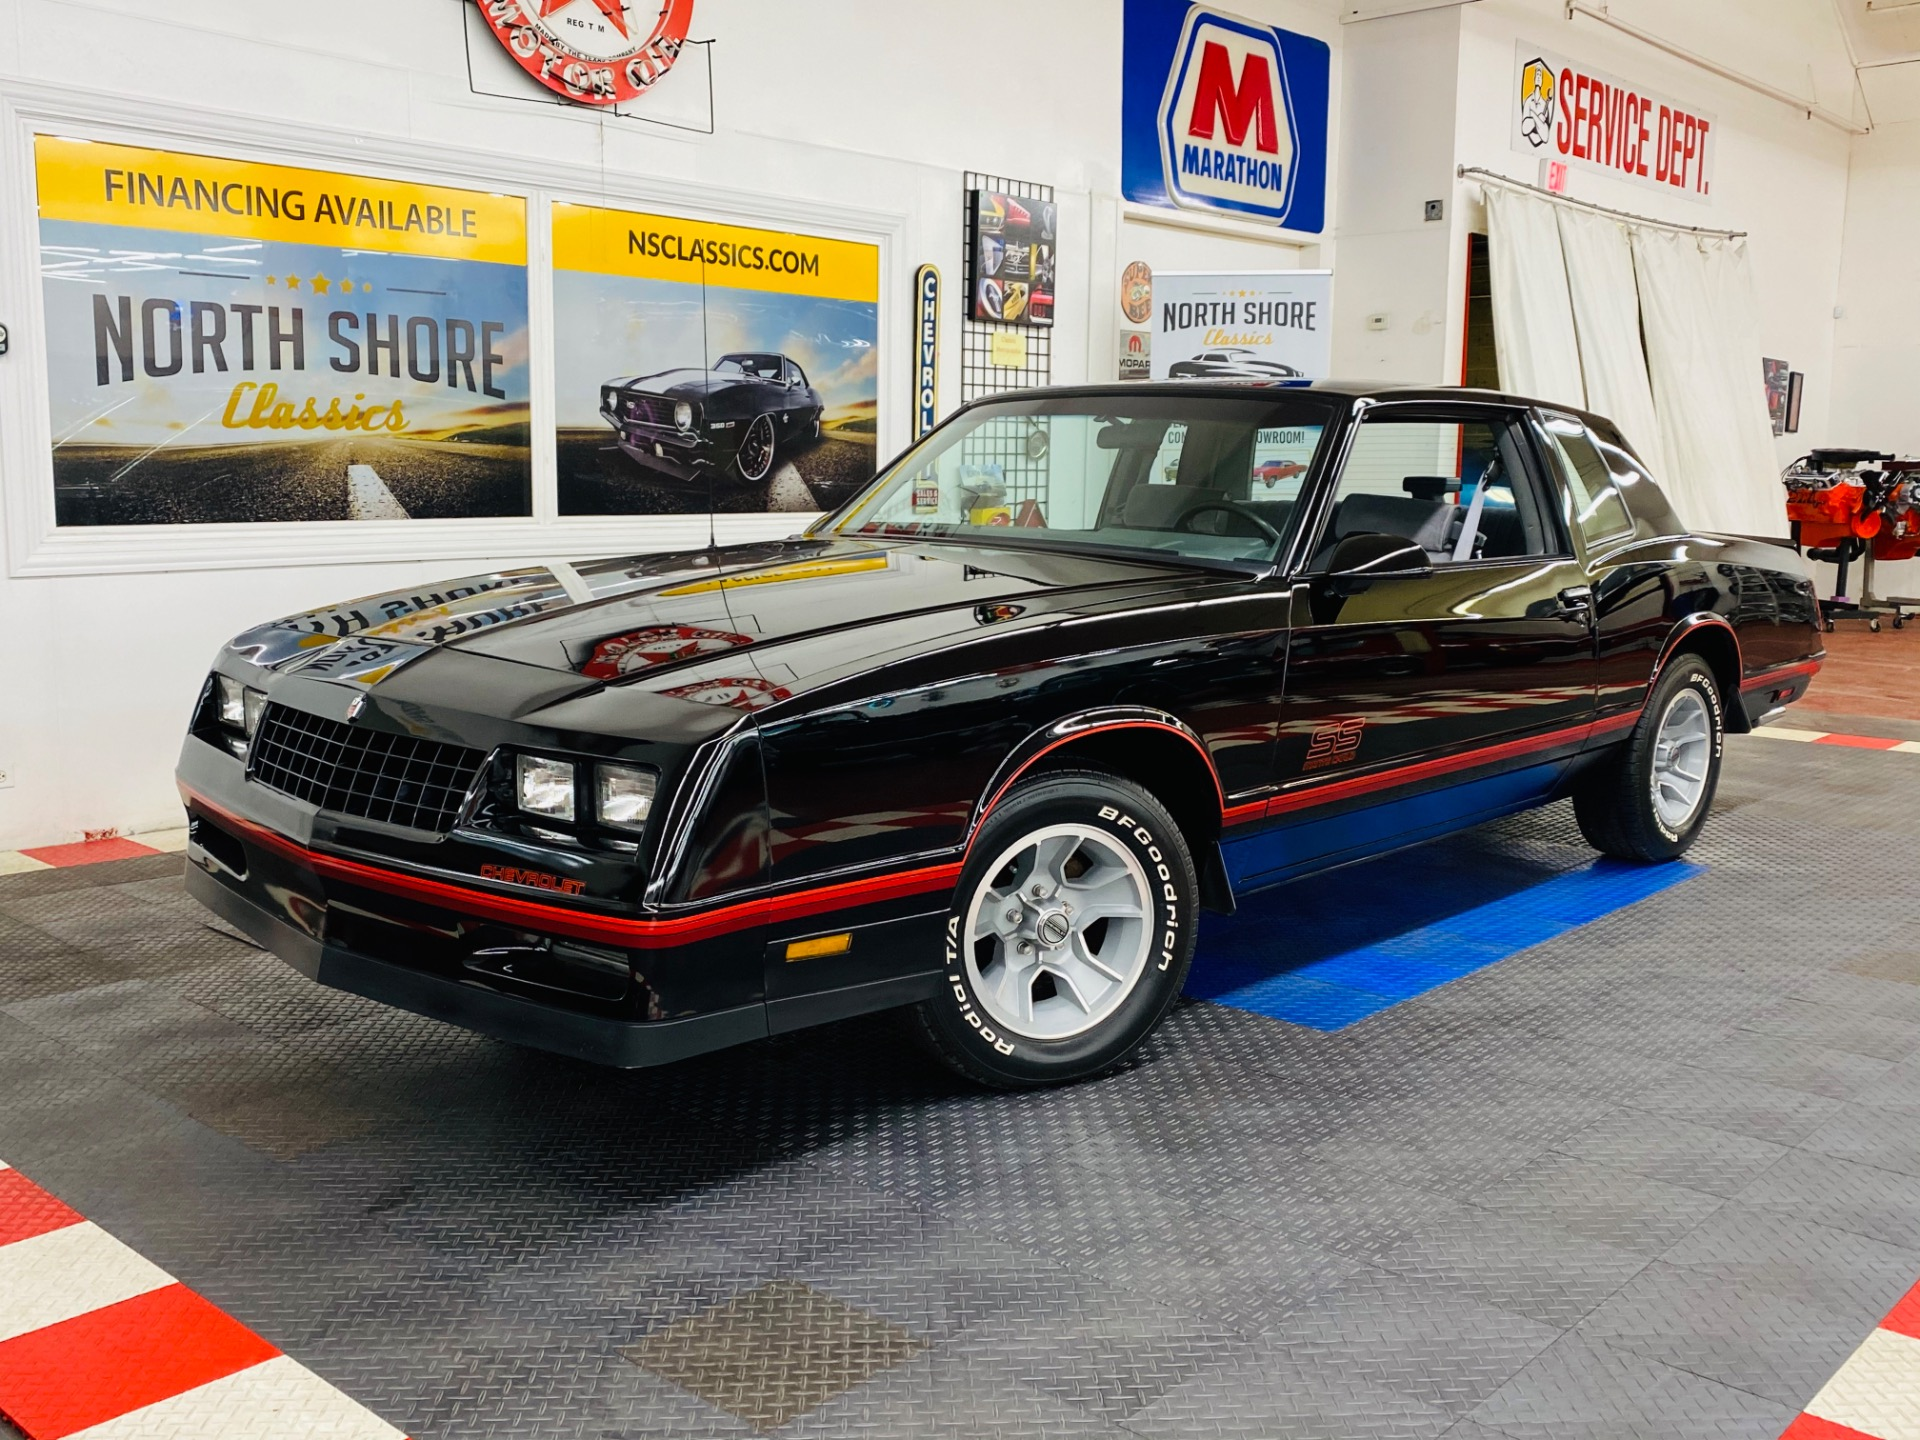 Used 1988 Chevrolet Monte Carlo - SUPER SPORT - 34K ORIGINAL MILES - LIKE NEW - SEE VIDEO | Mundelein, IL